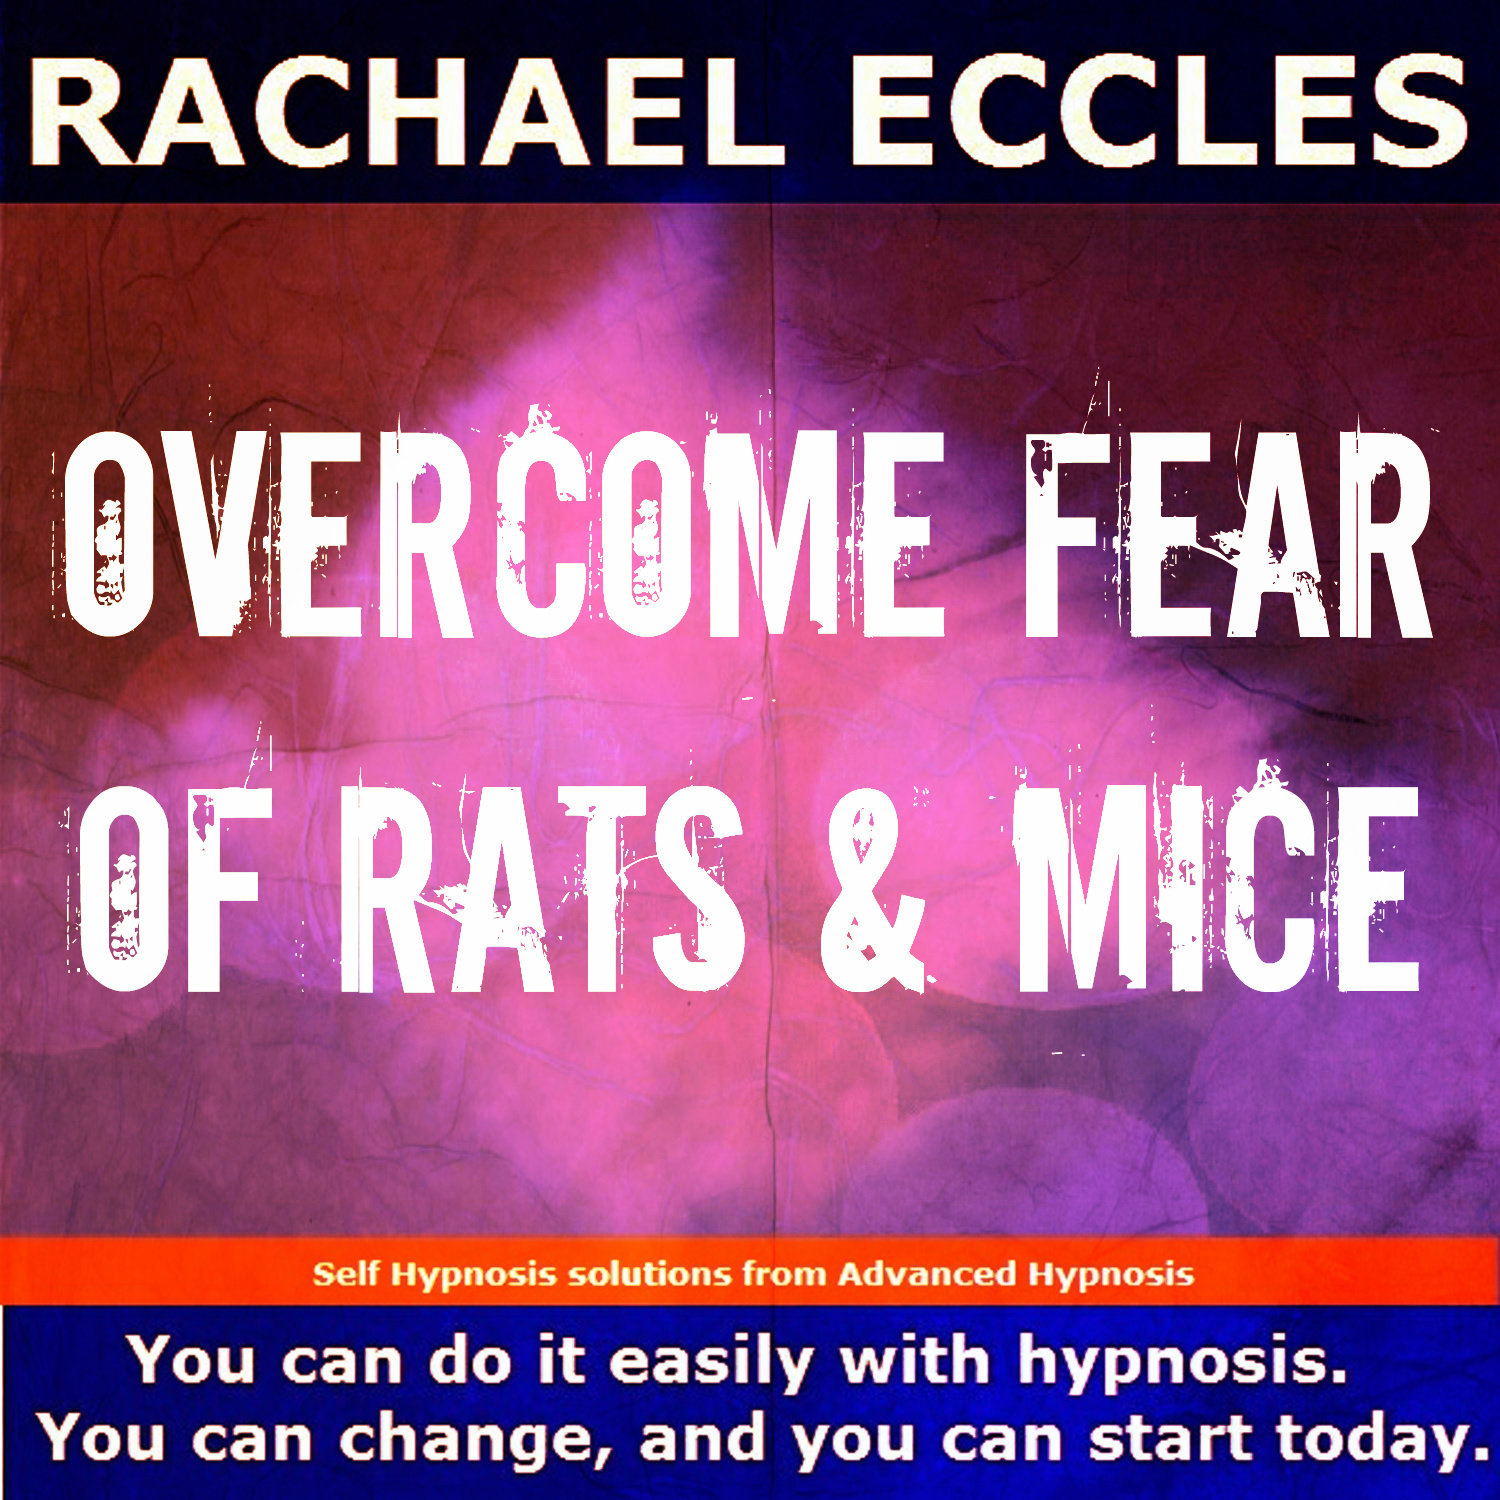 Overcome Fear of Rats & Mice Hypnosis Hypnotherapy CD